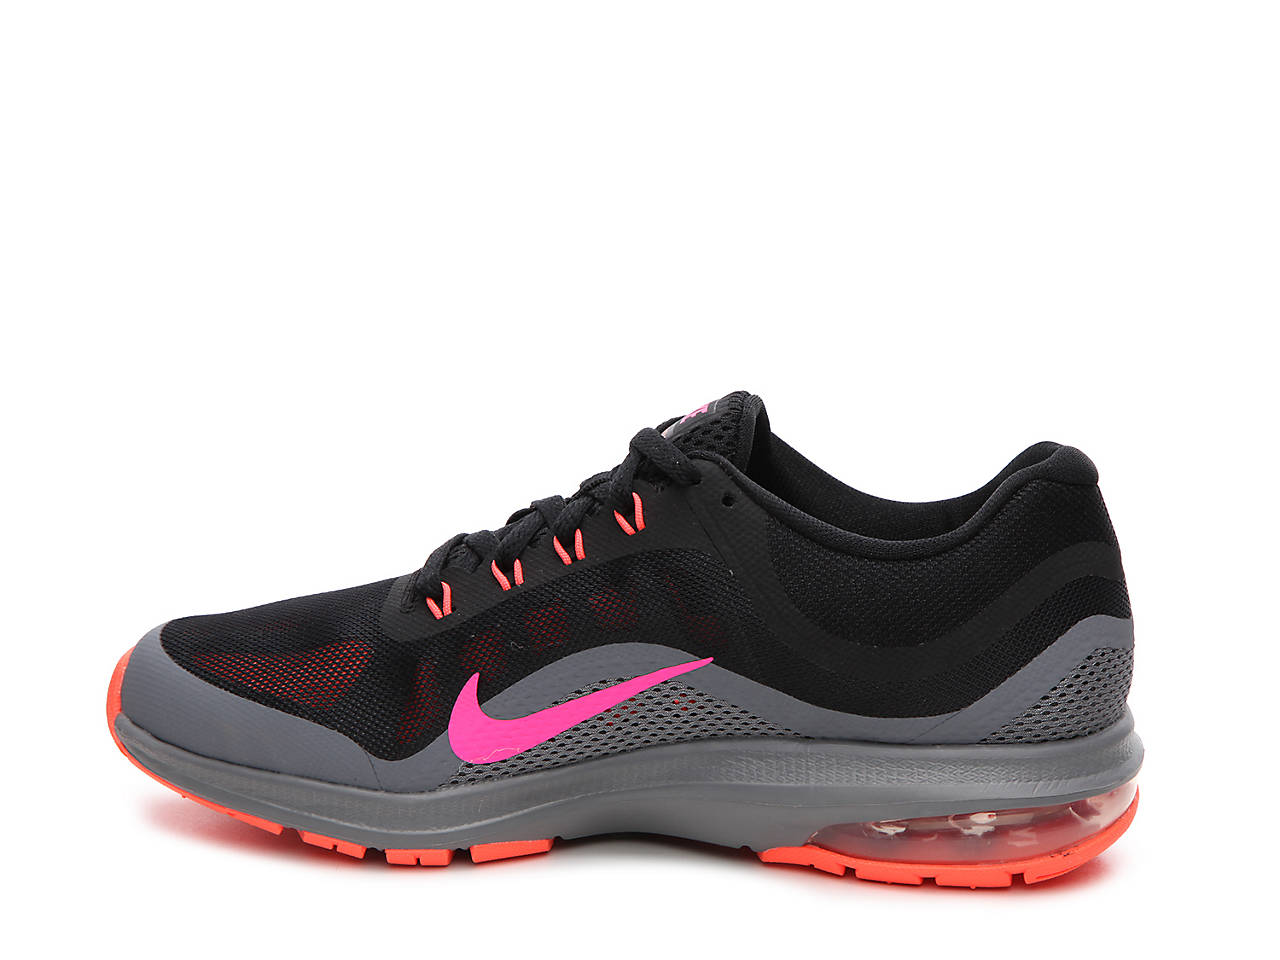 designer fashion 87fba 43d72 Air Max Dynasty 2 Performance Running Shoe - Women s. next